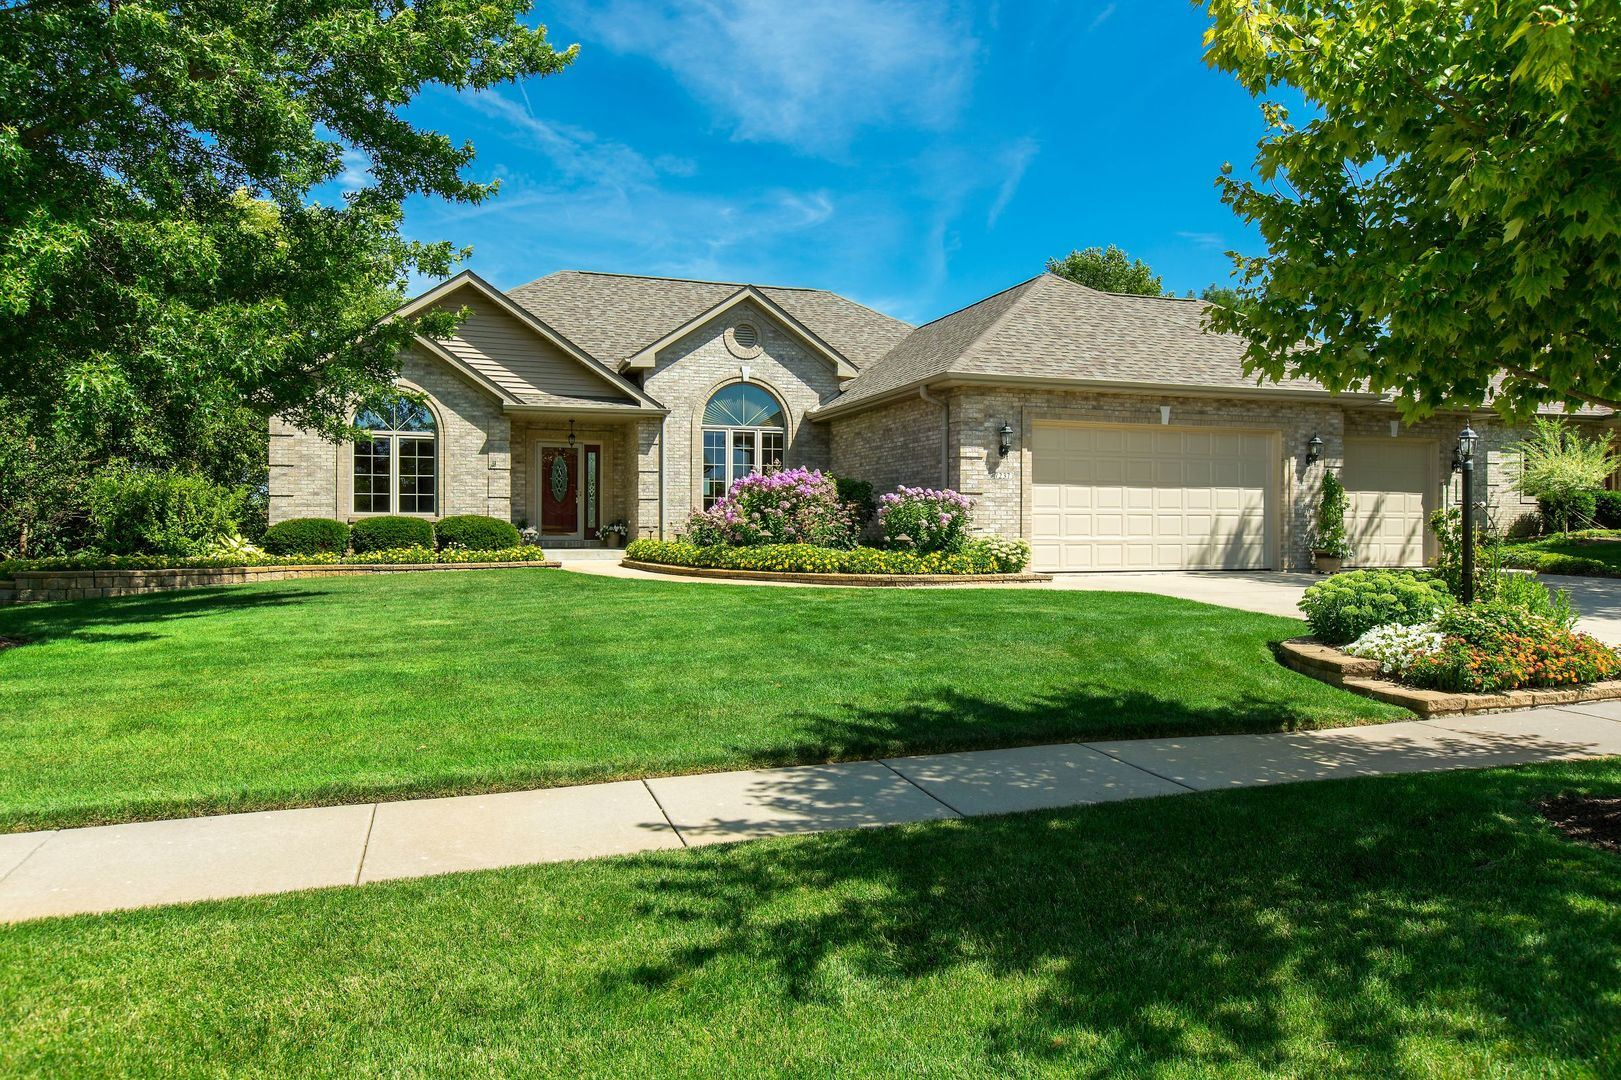 7237 W Ridge Lane, Cherry Valley, IL 61016 - #: 10734319